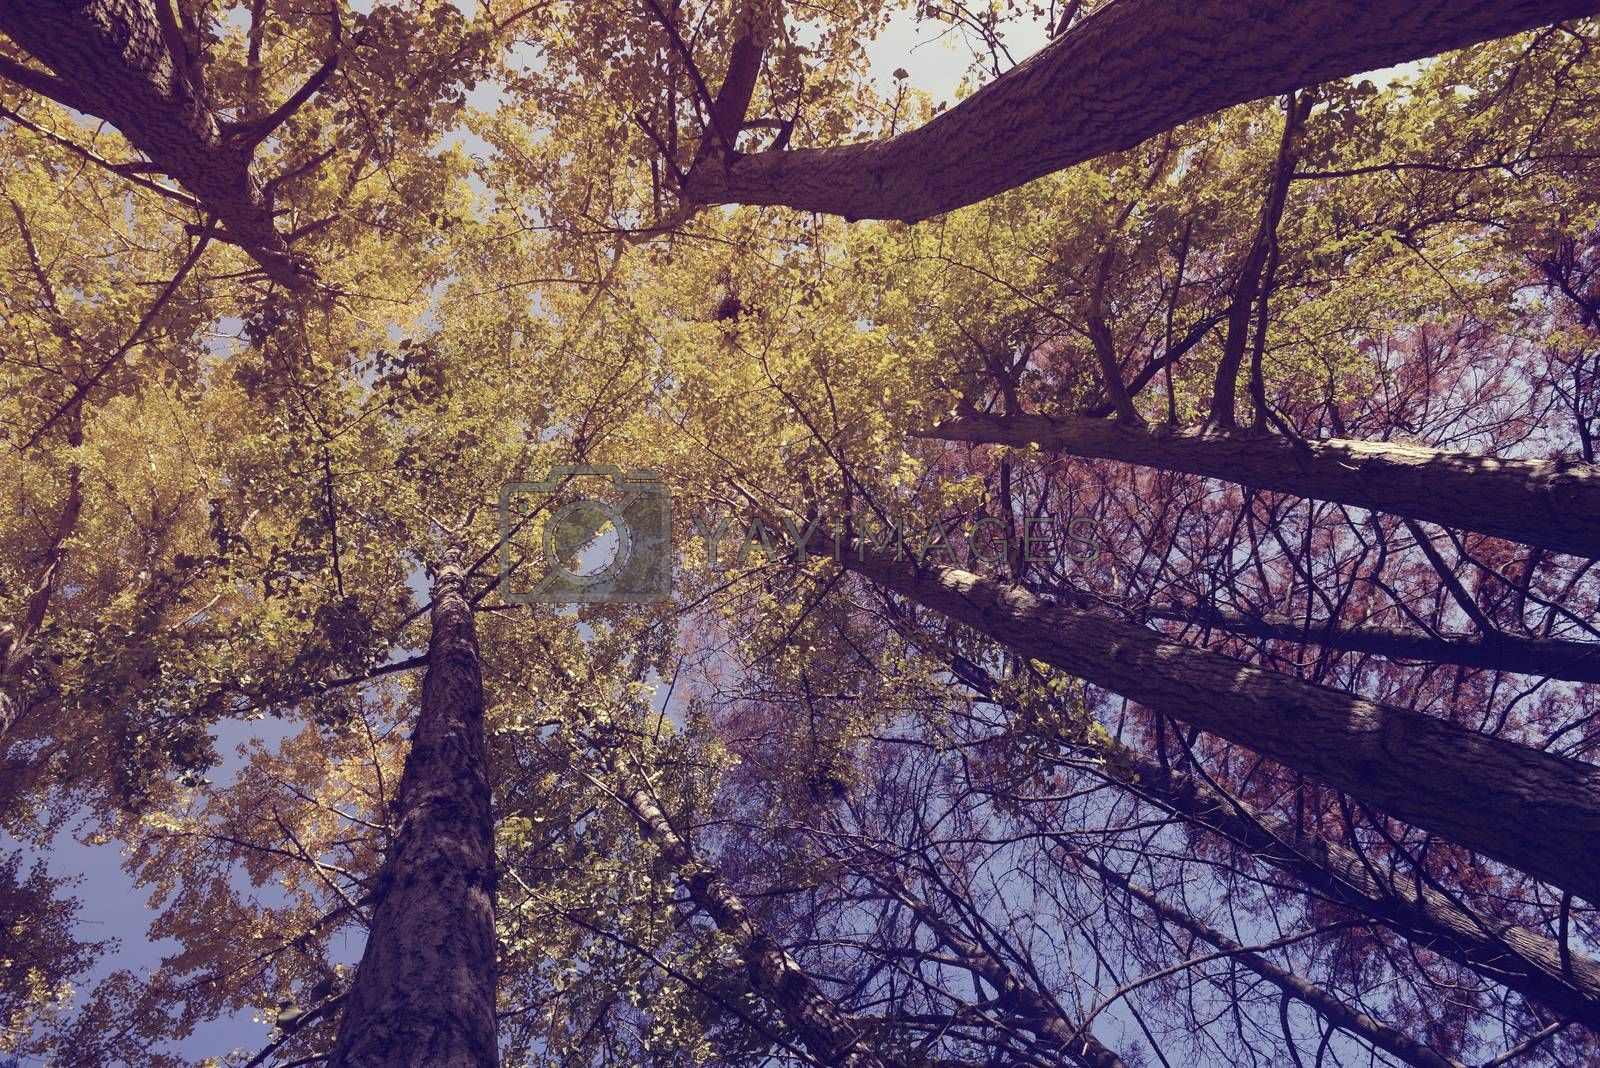 View from below of trees in the park with vintage style filter.